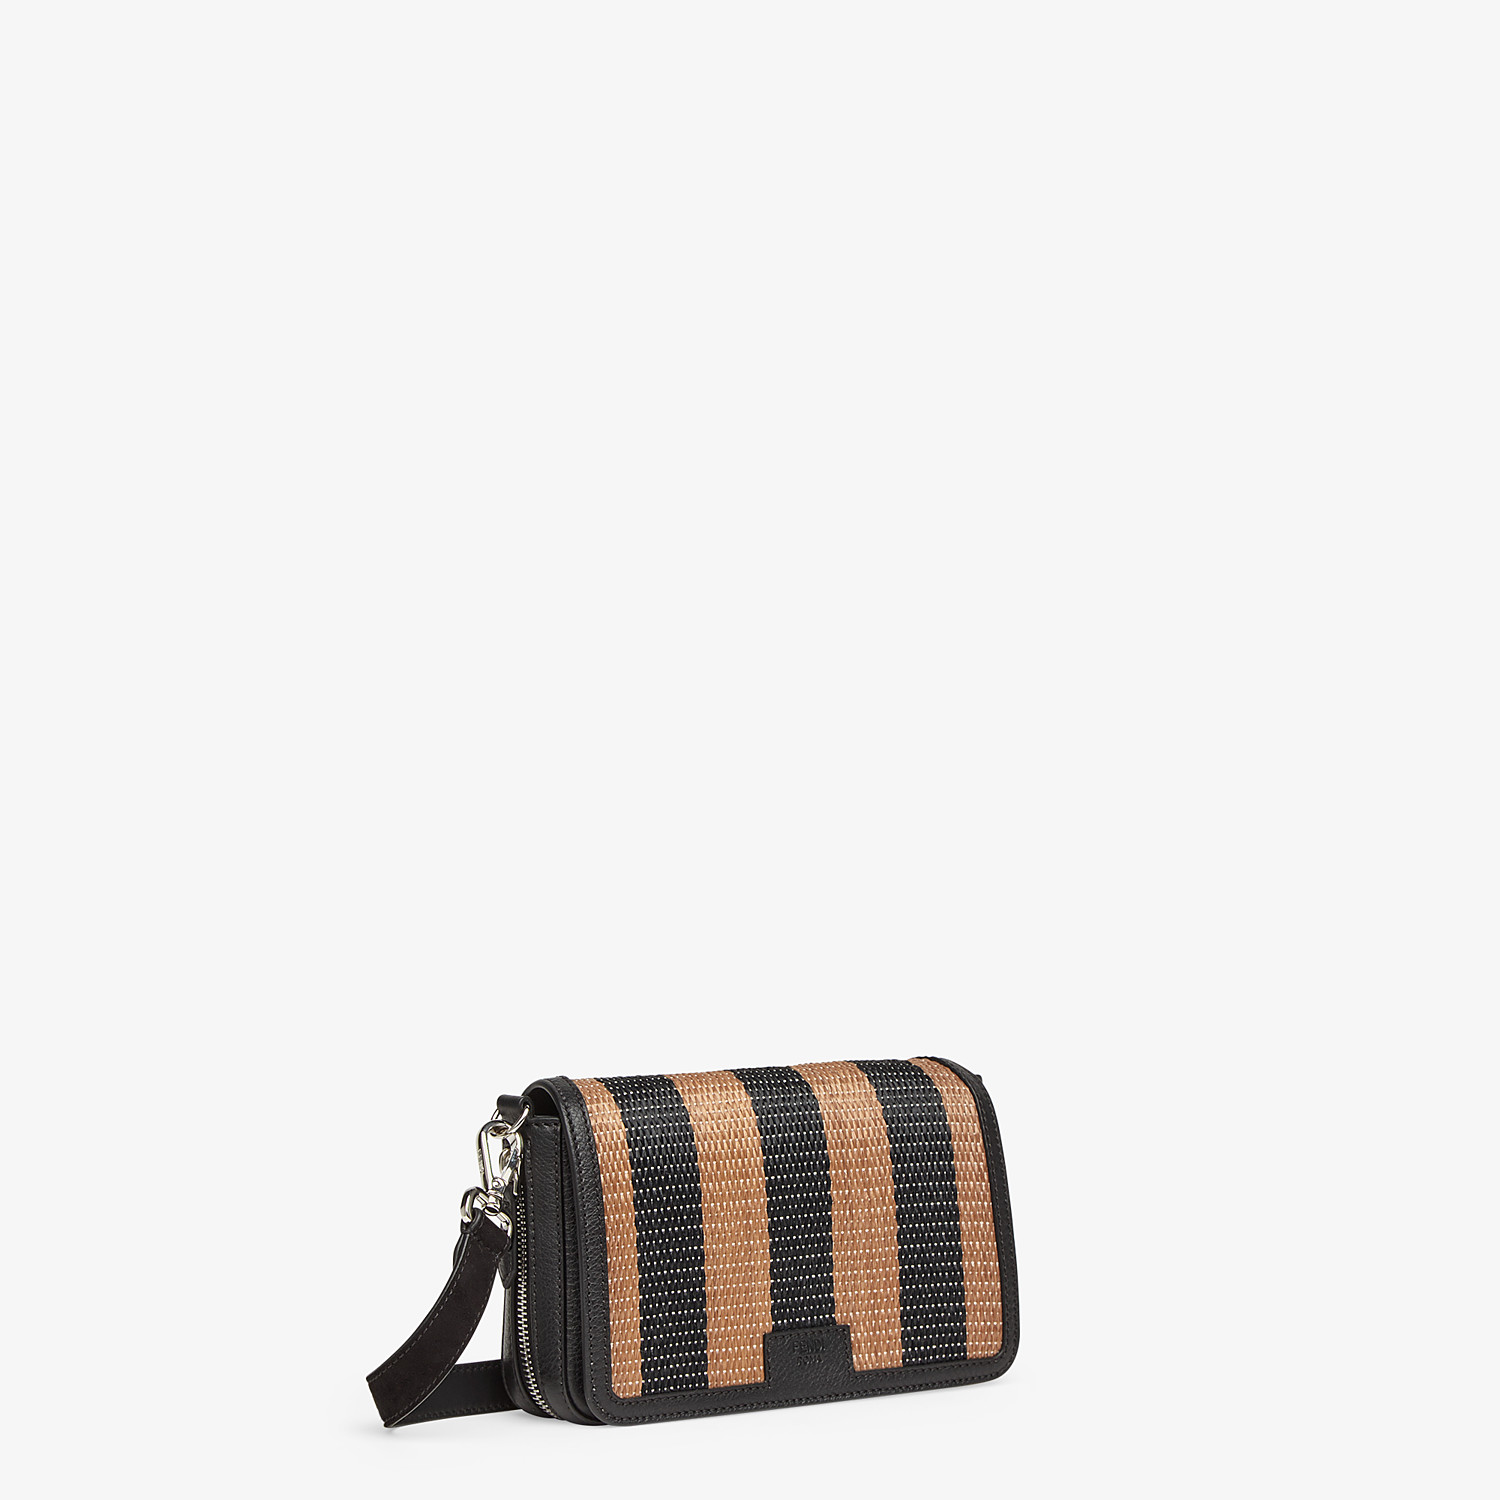 FENDI FLAP BAG - Brown raffia bag - view 2 detail